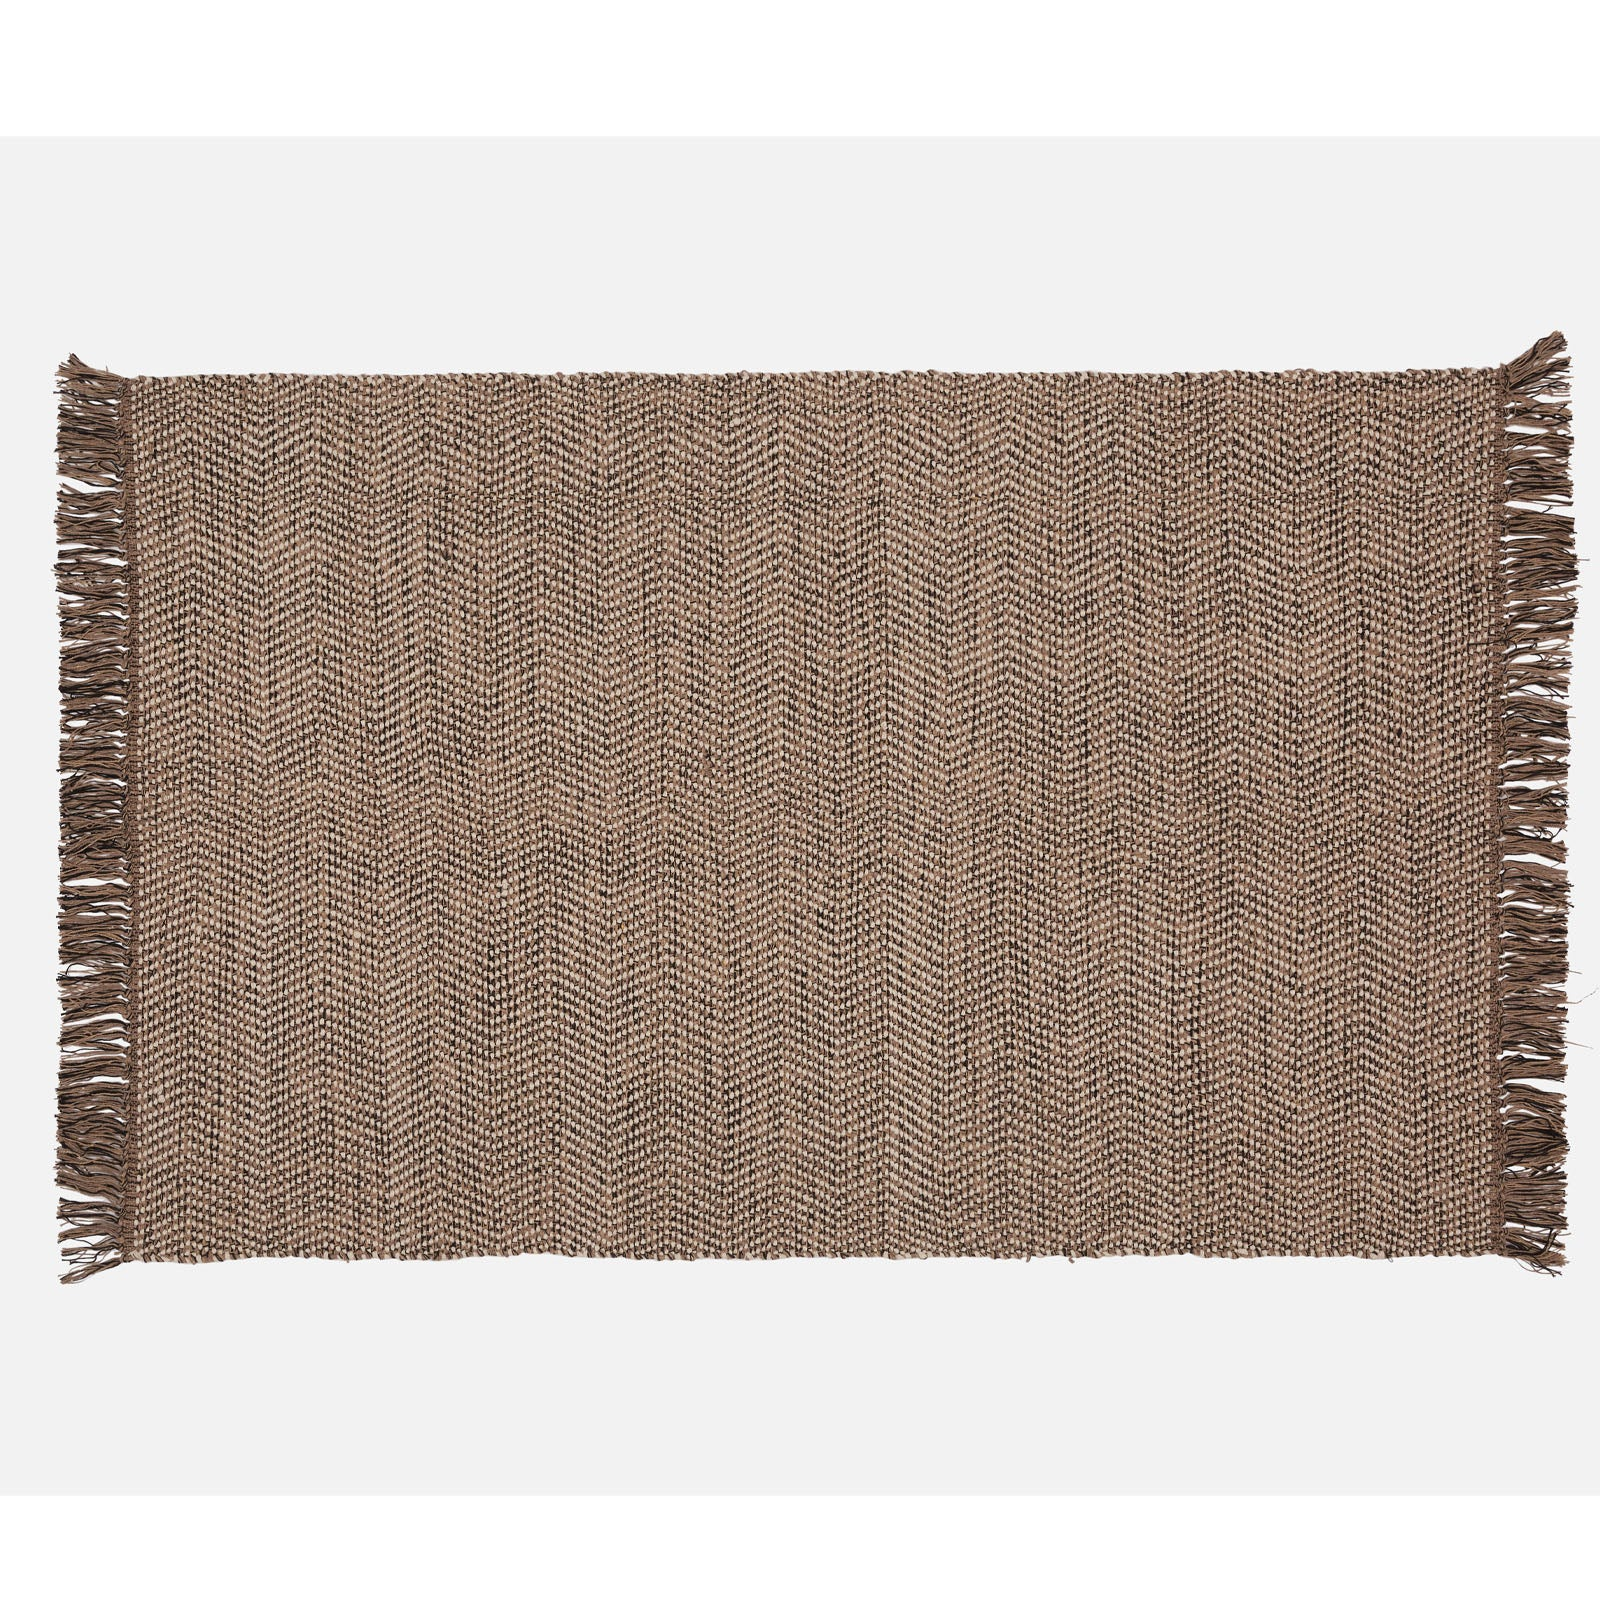 90X300cm handmade Wool Rug  JH-2875-Natural-long -  90x300 سجادة صوف يدوية - Shop Online Furniture and Home Decor Store in Dubai, UAE at ebarza